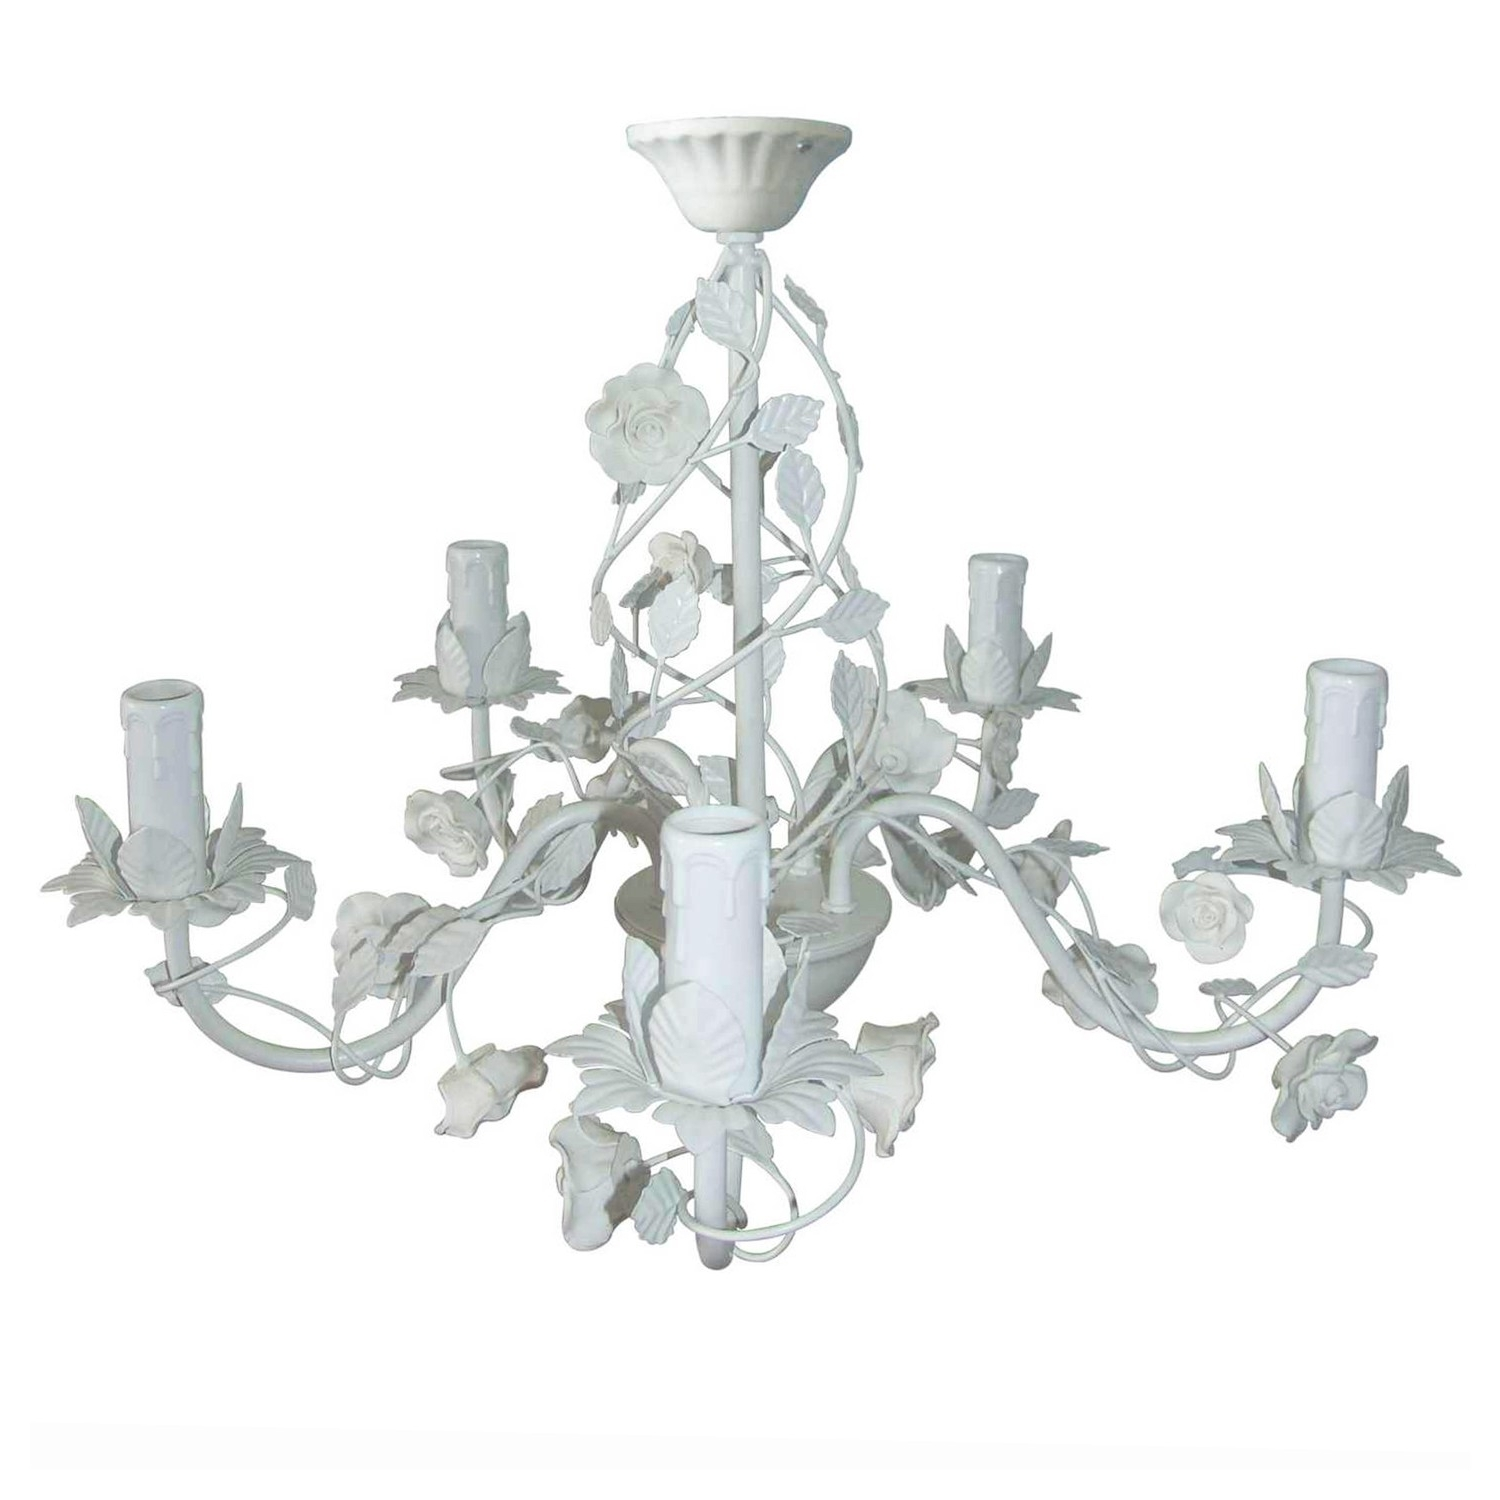 Trendy This Cream Rose 5 Arm Chandelier Is A Beautiful Light Fixture In In Cream Chandelier Lights (View 8 of 15)